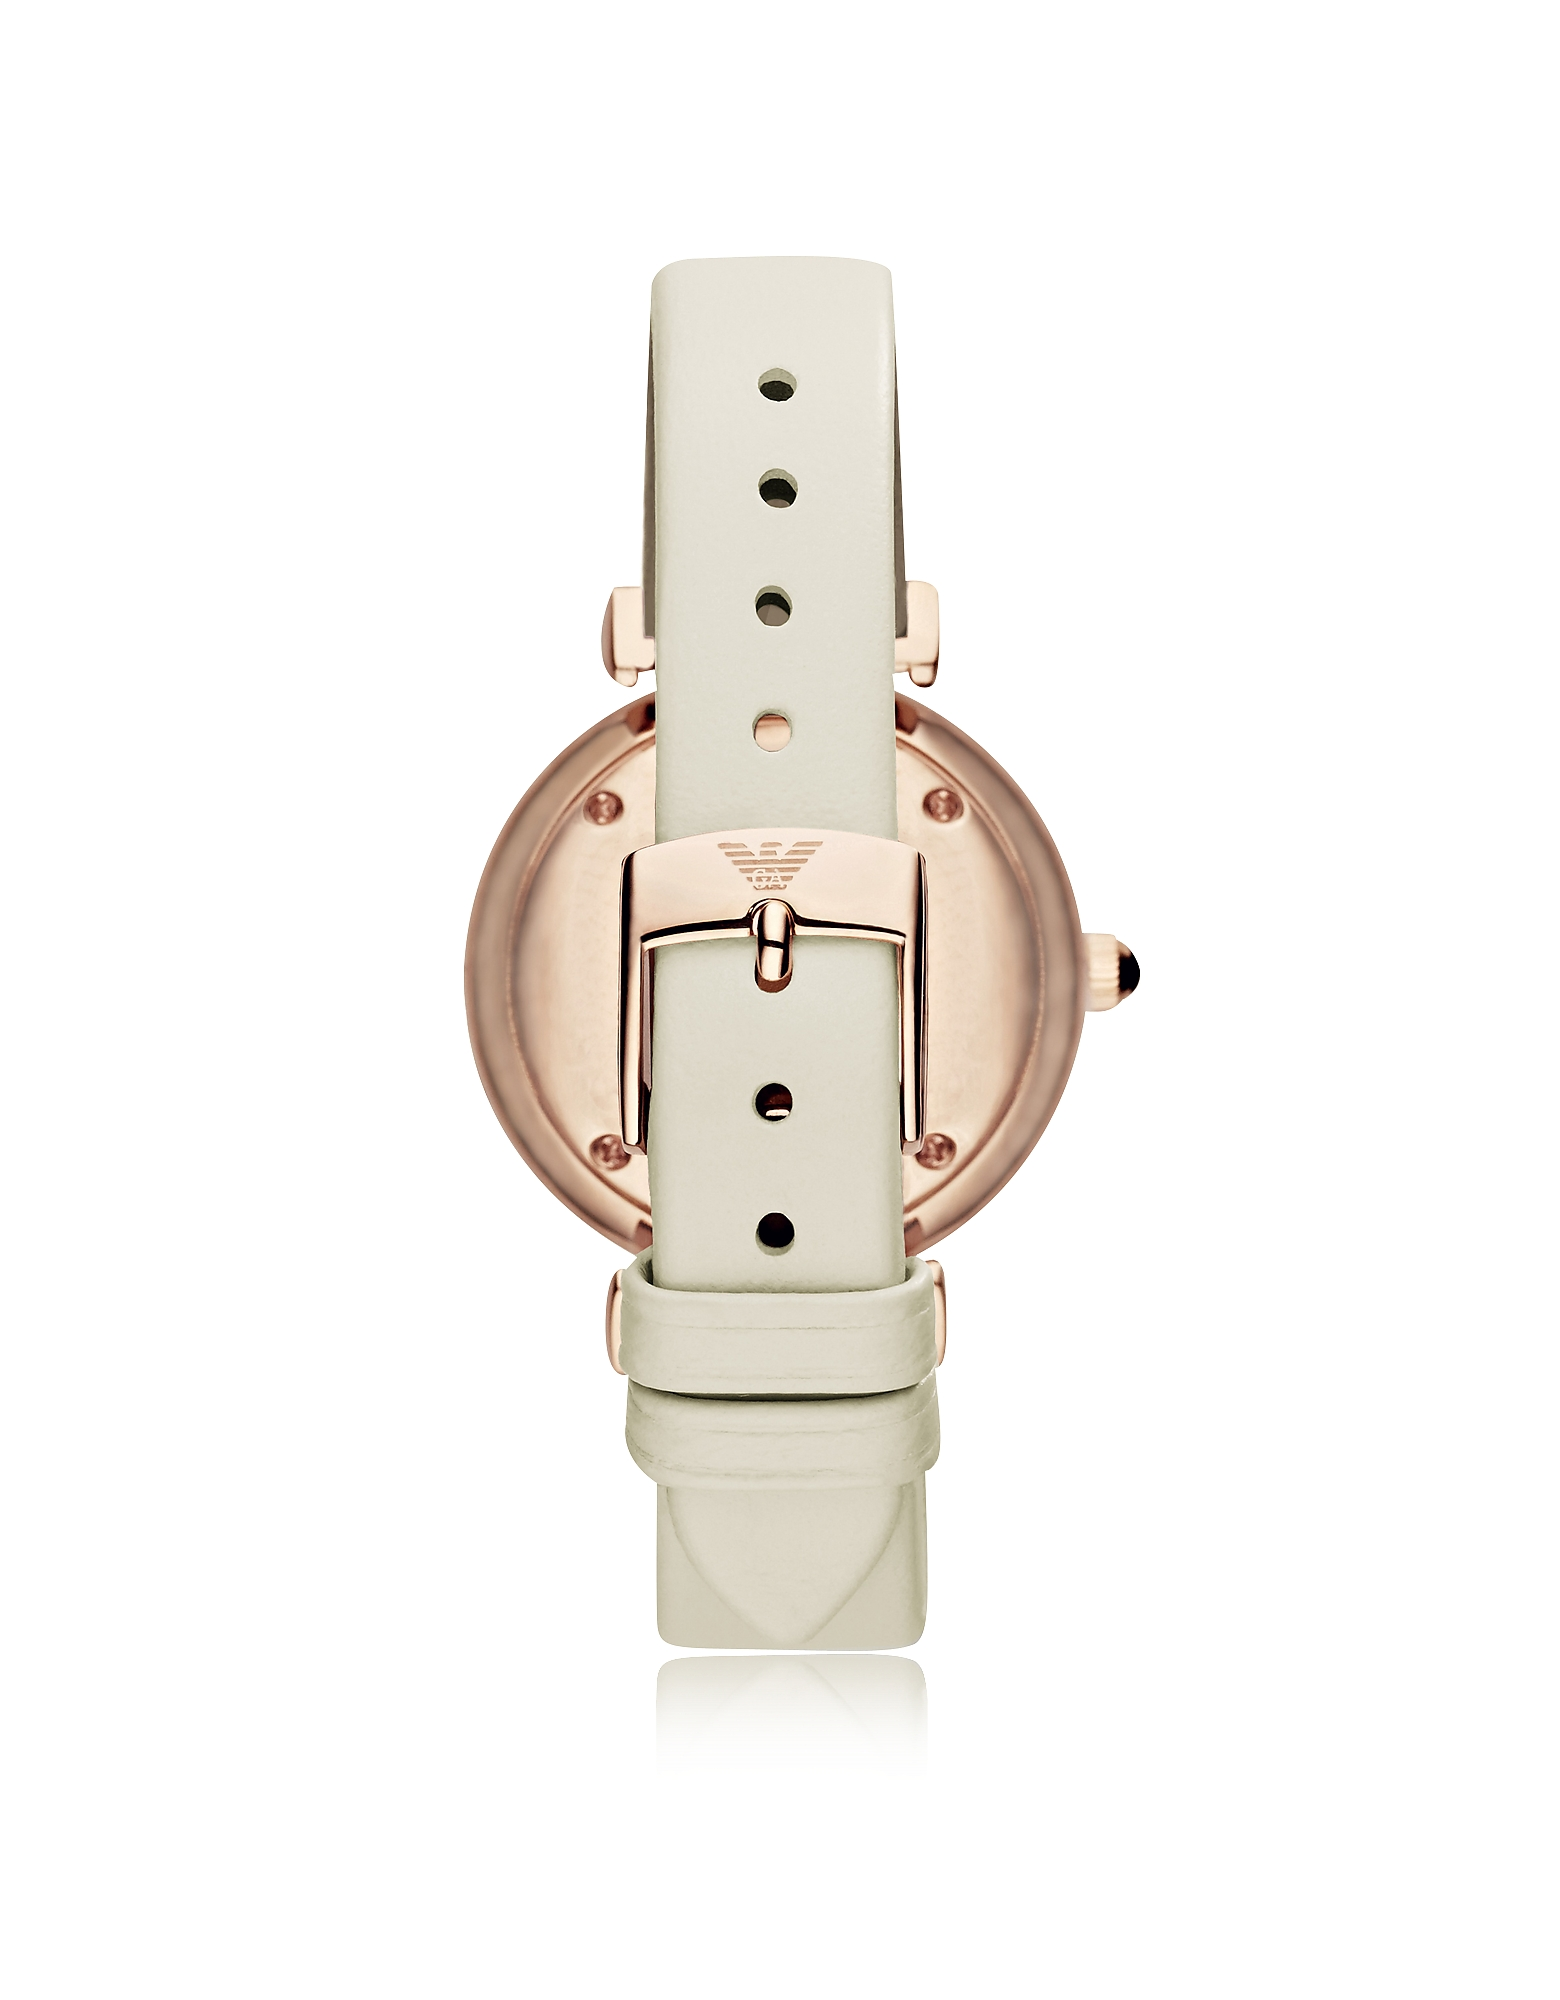 T-Bar Rose Gold-tone Women's Watch w/Ivory Leather Band от Forzieri.com INT